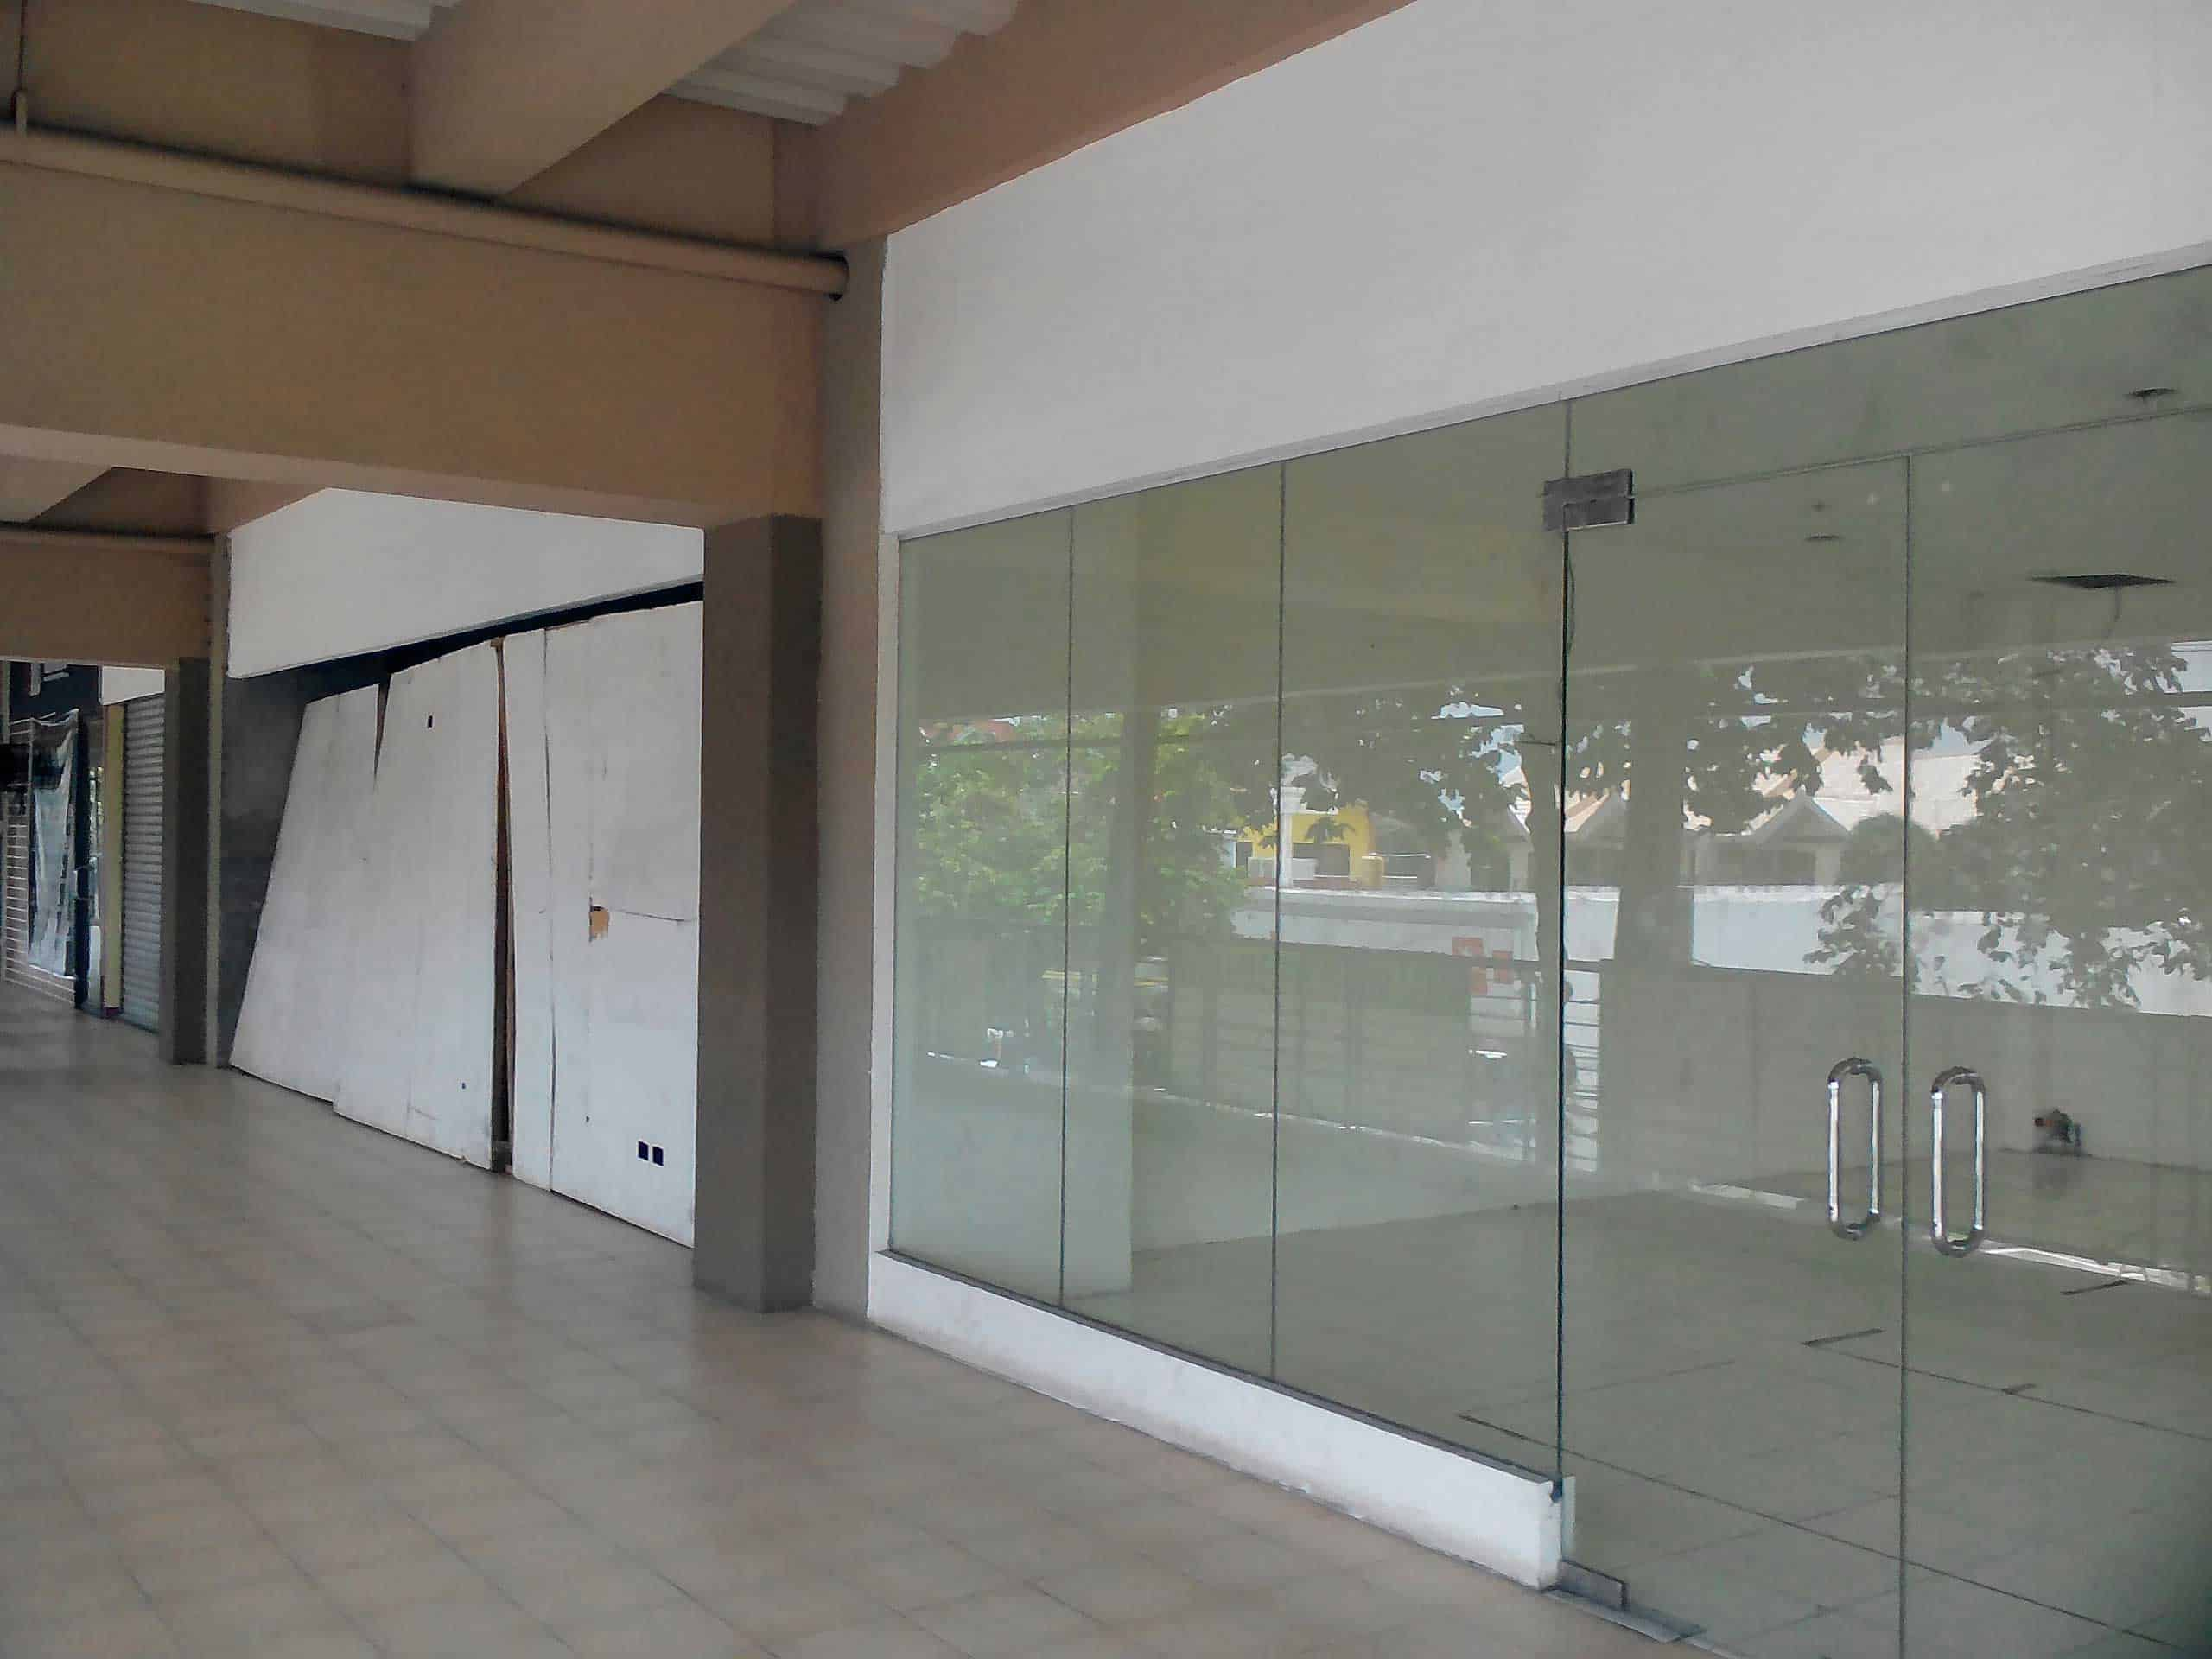 House Apartment For Rent In Valenzuela City